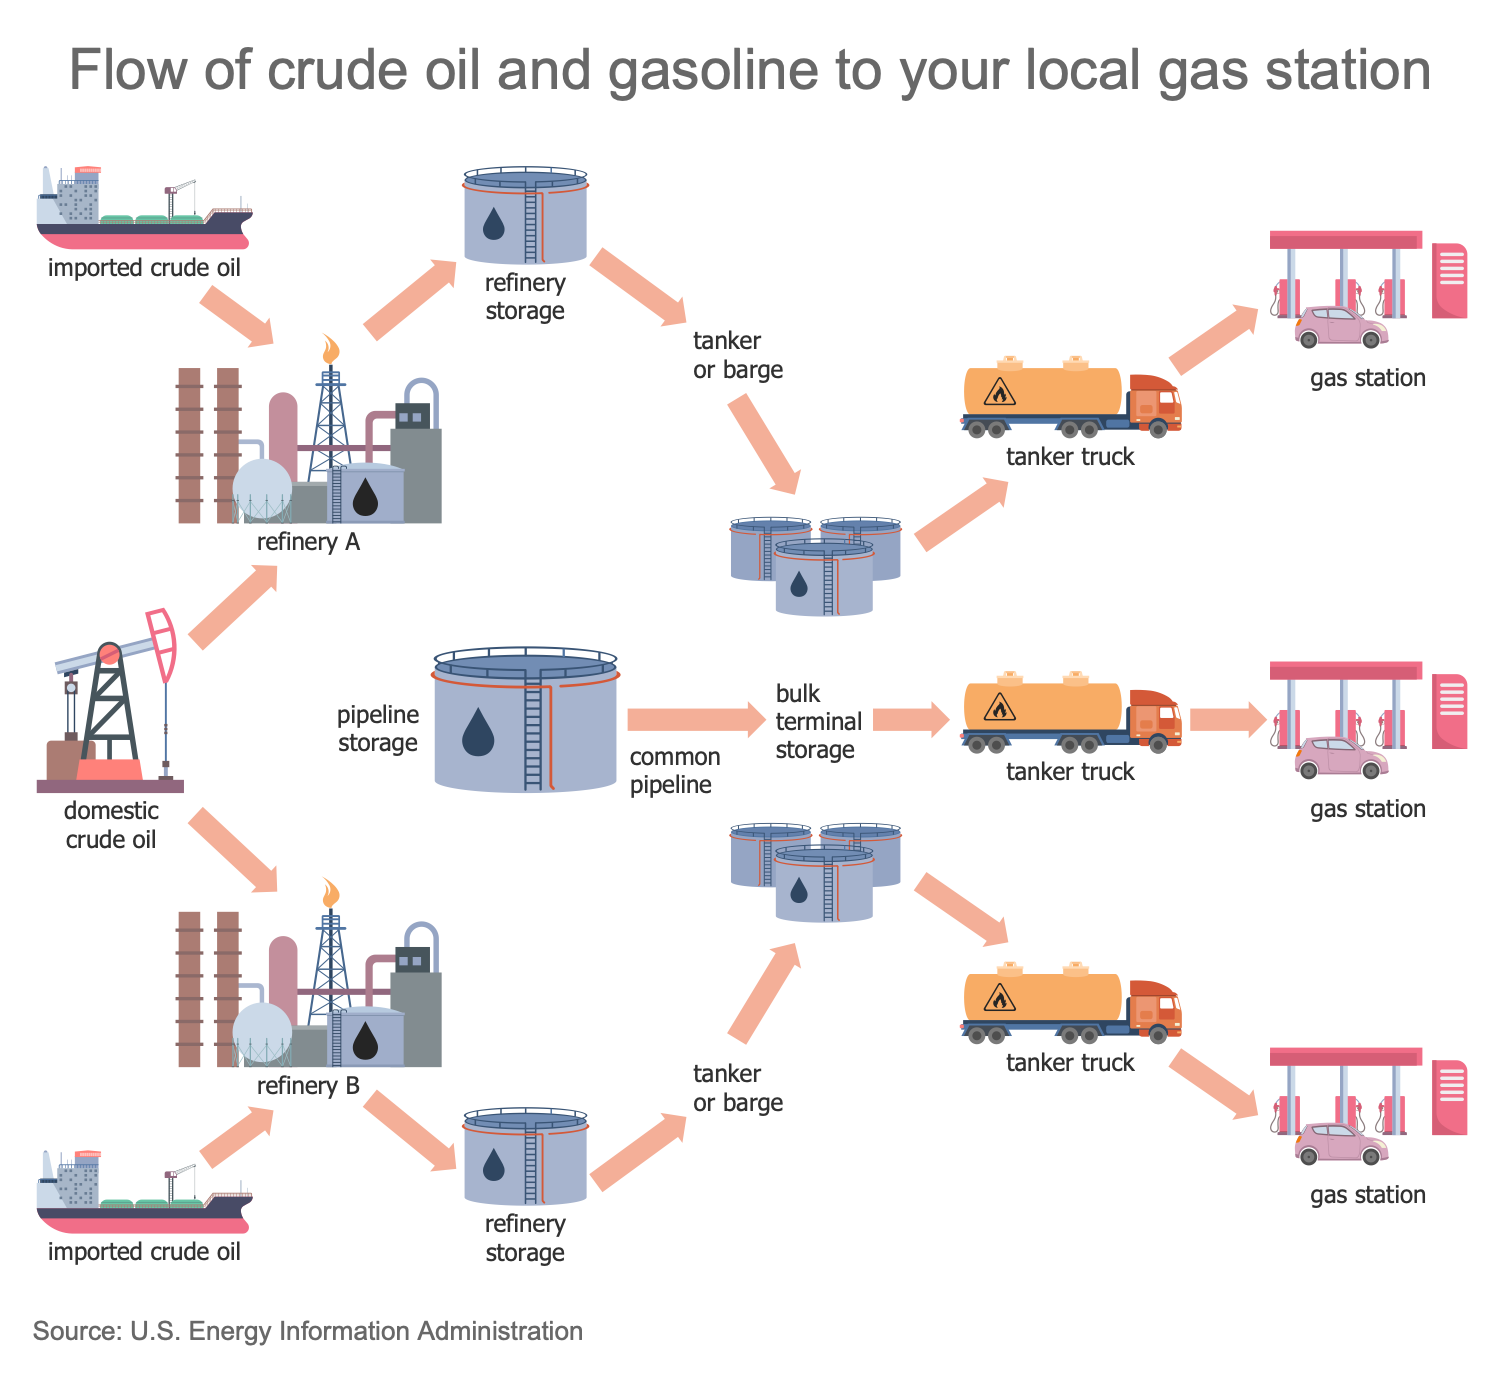 Flow of Crude Oil and Gasoline